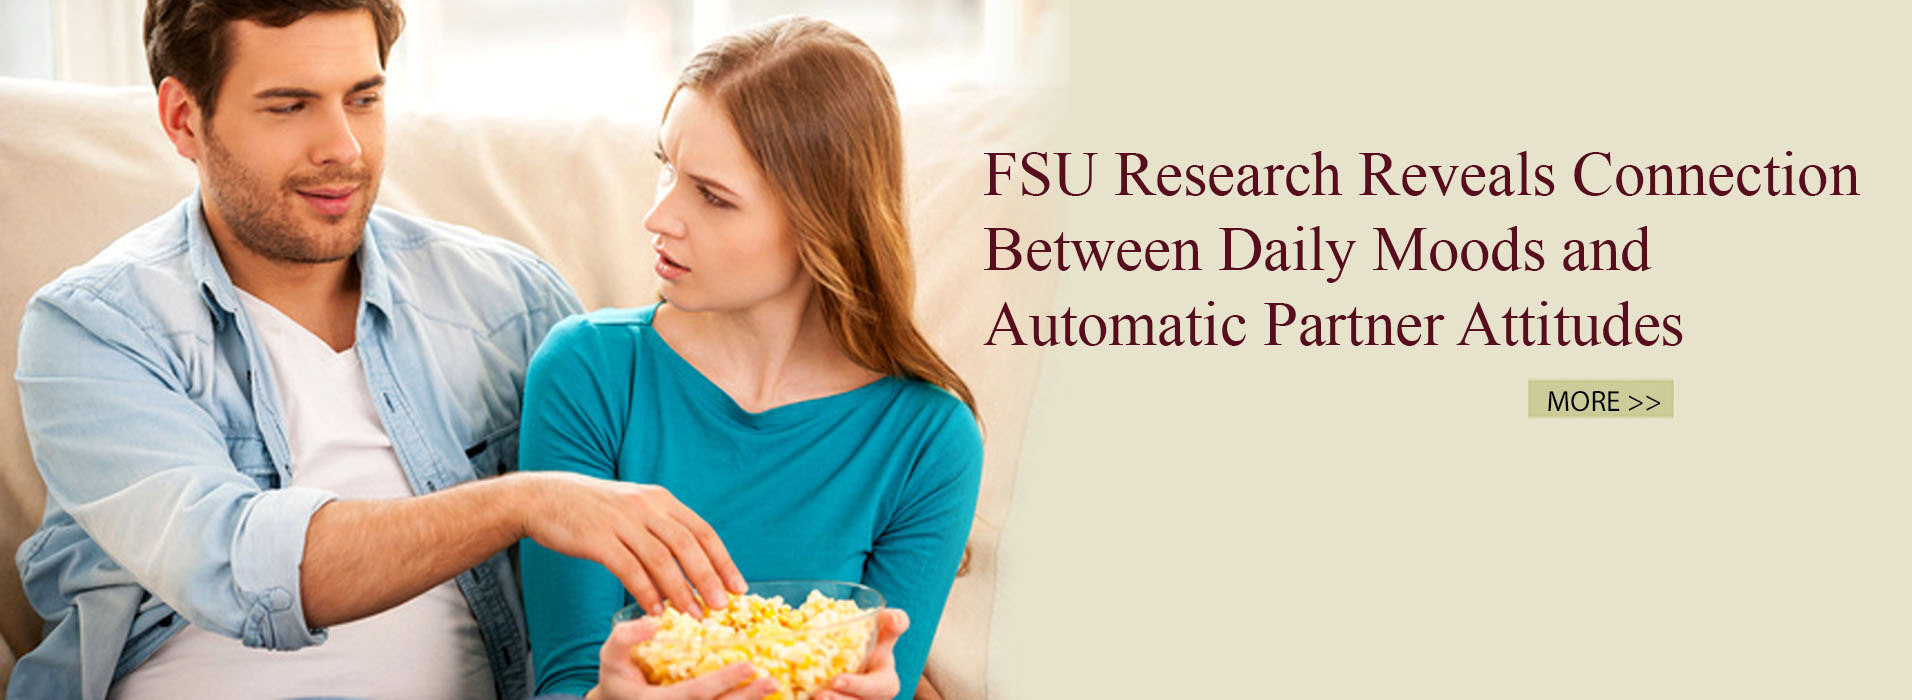 FSU Research Reveals Connection between Daily Moods and Automatic Partner Attitudes